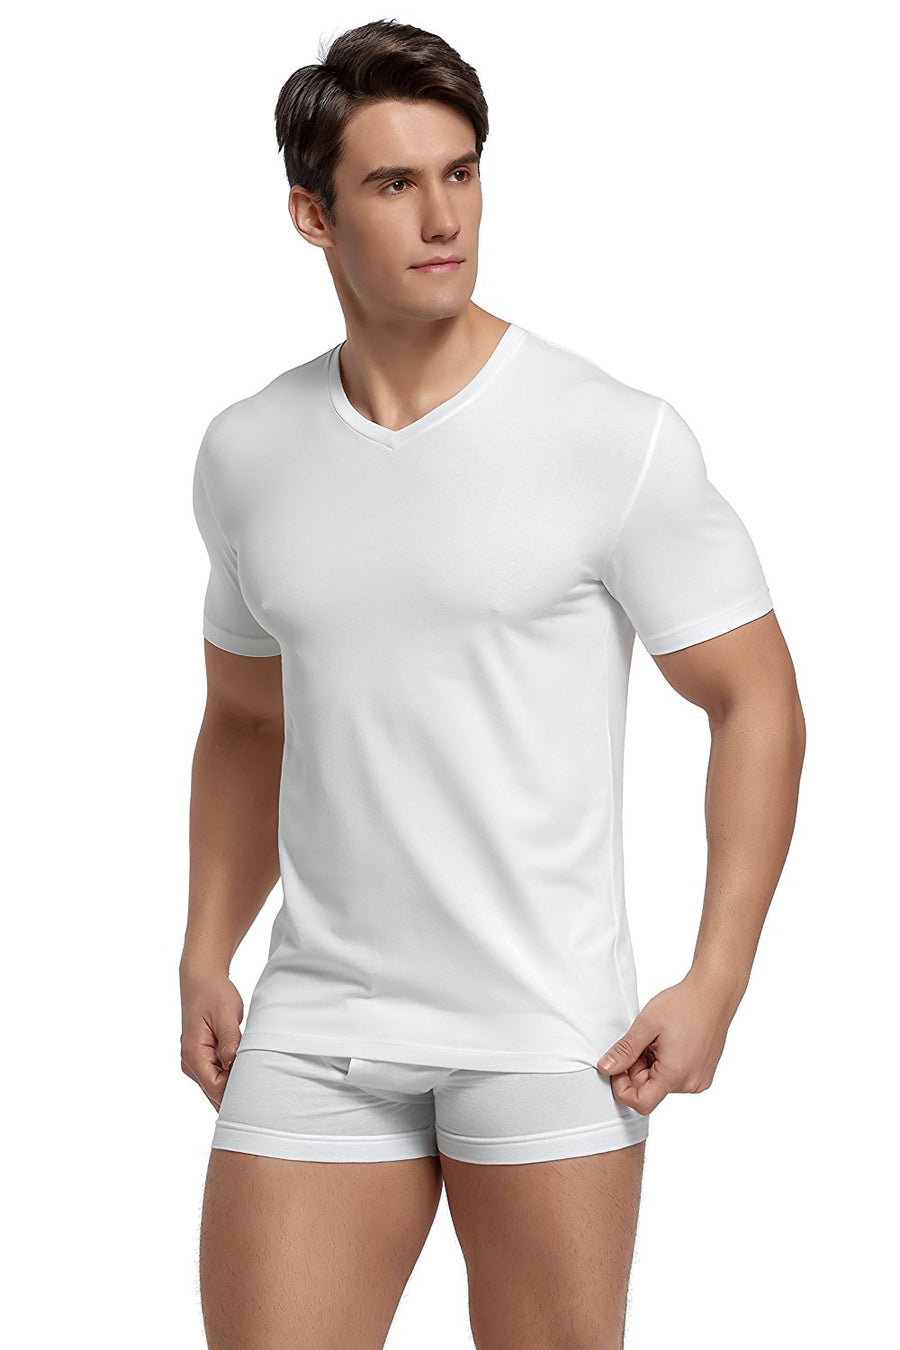 CYZ Mens Cotton Stretch V-Neck Fitted T-Shirt 2-PK